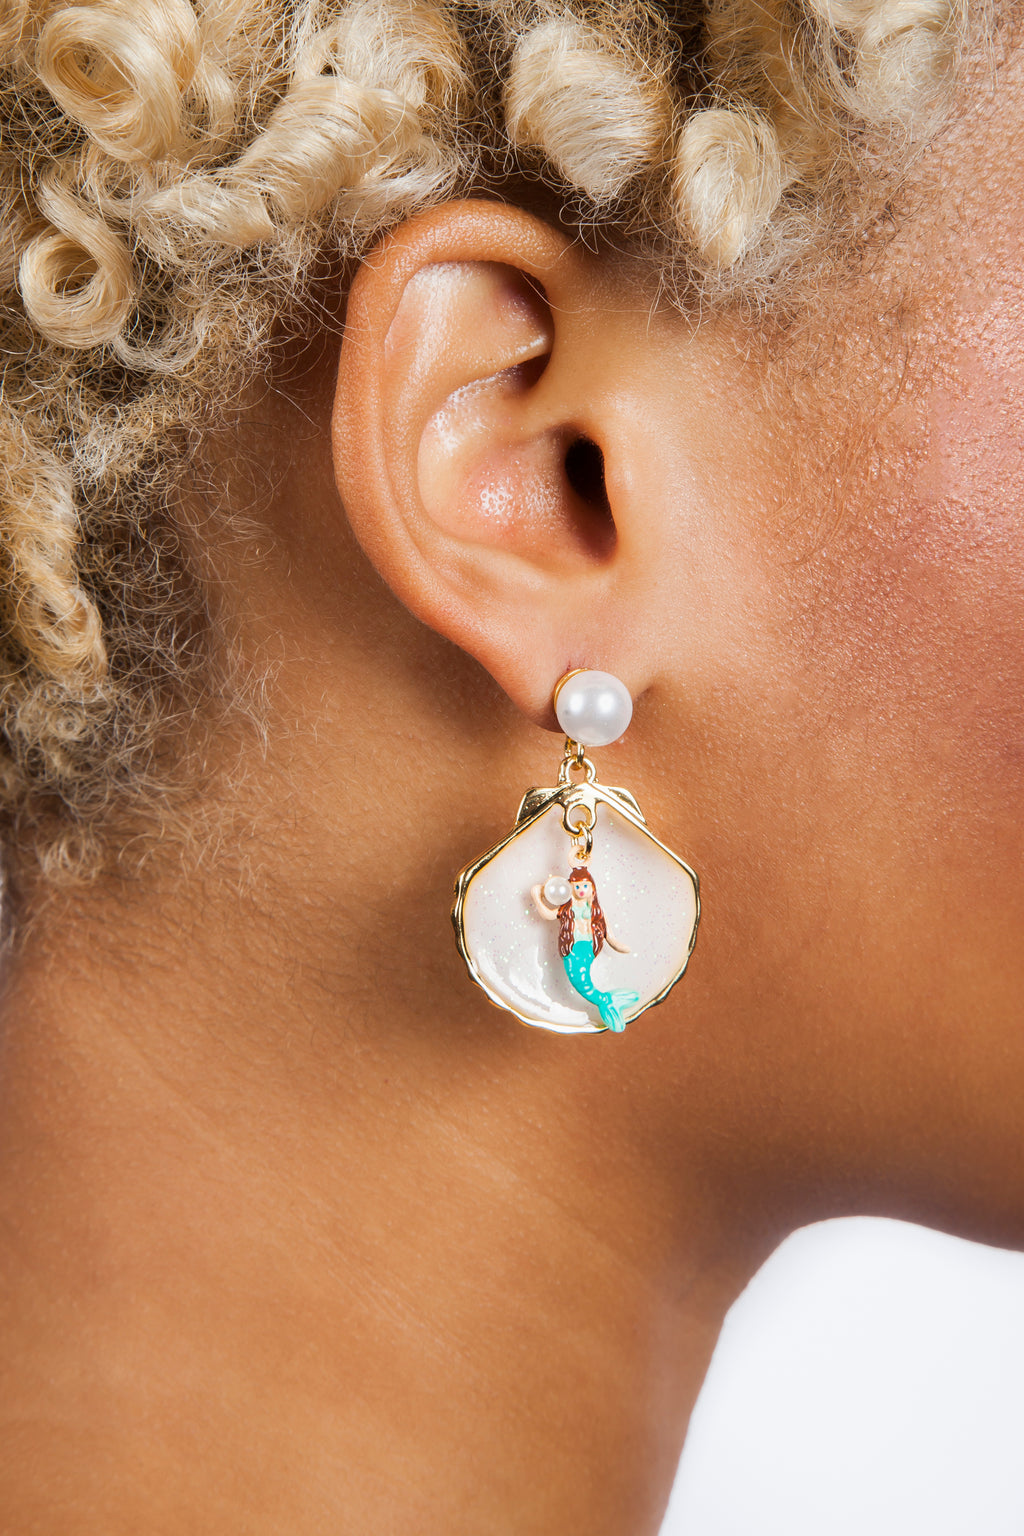 Mermaid In Seashell Earrings